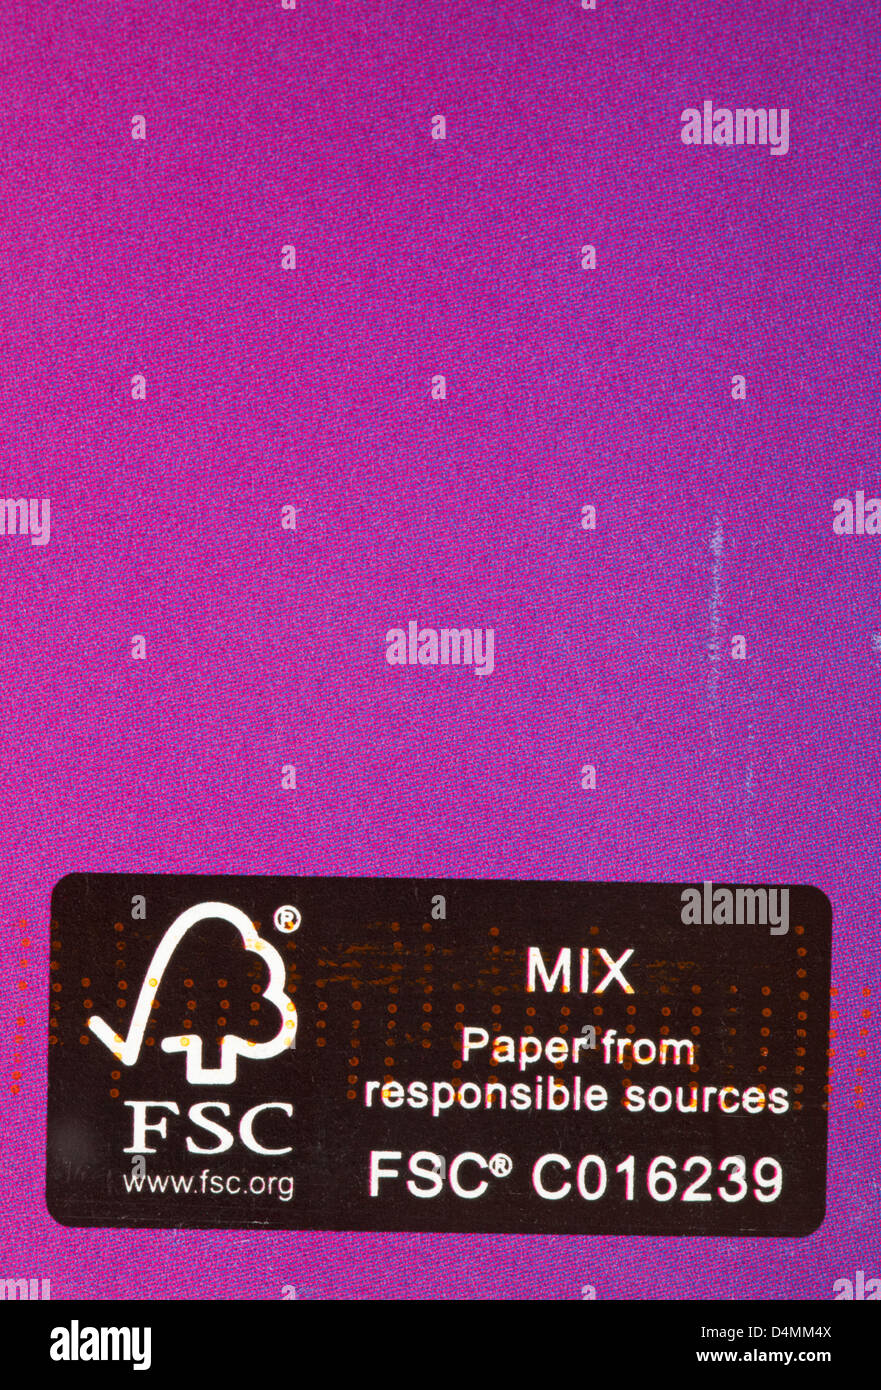 FSC Mix paper from responsible sources logo on purple pink envelope - Stock Image